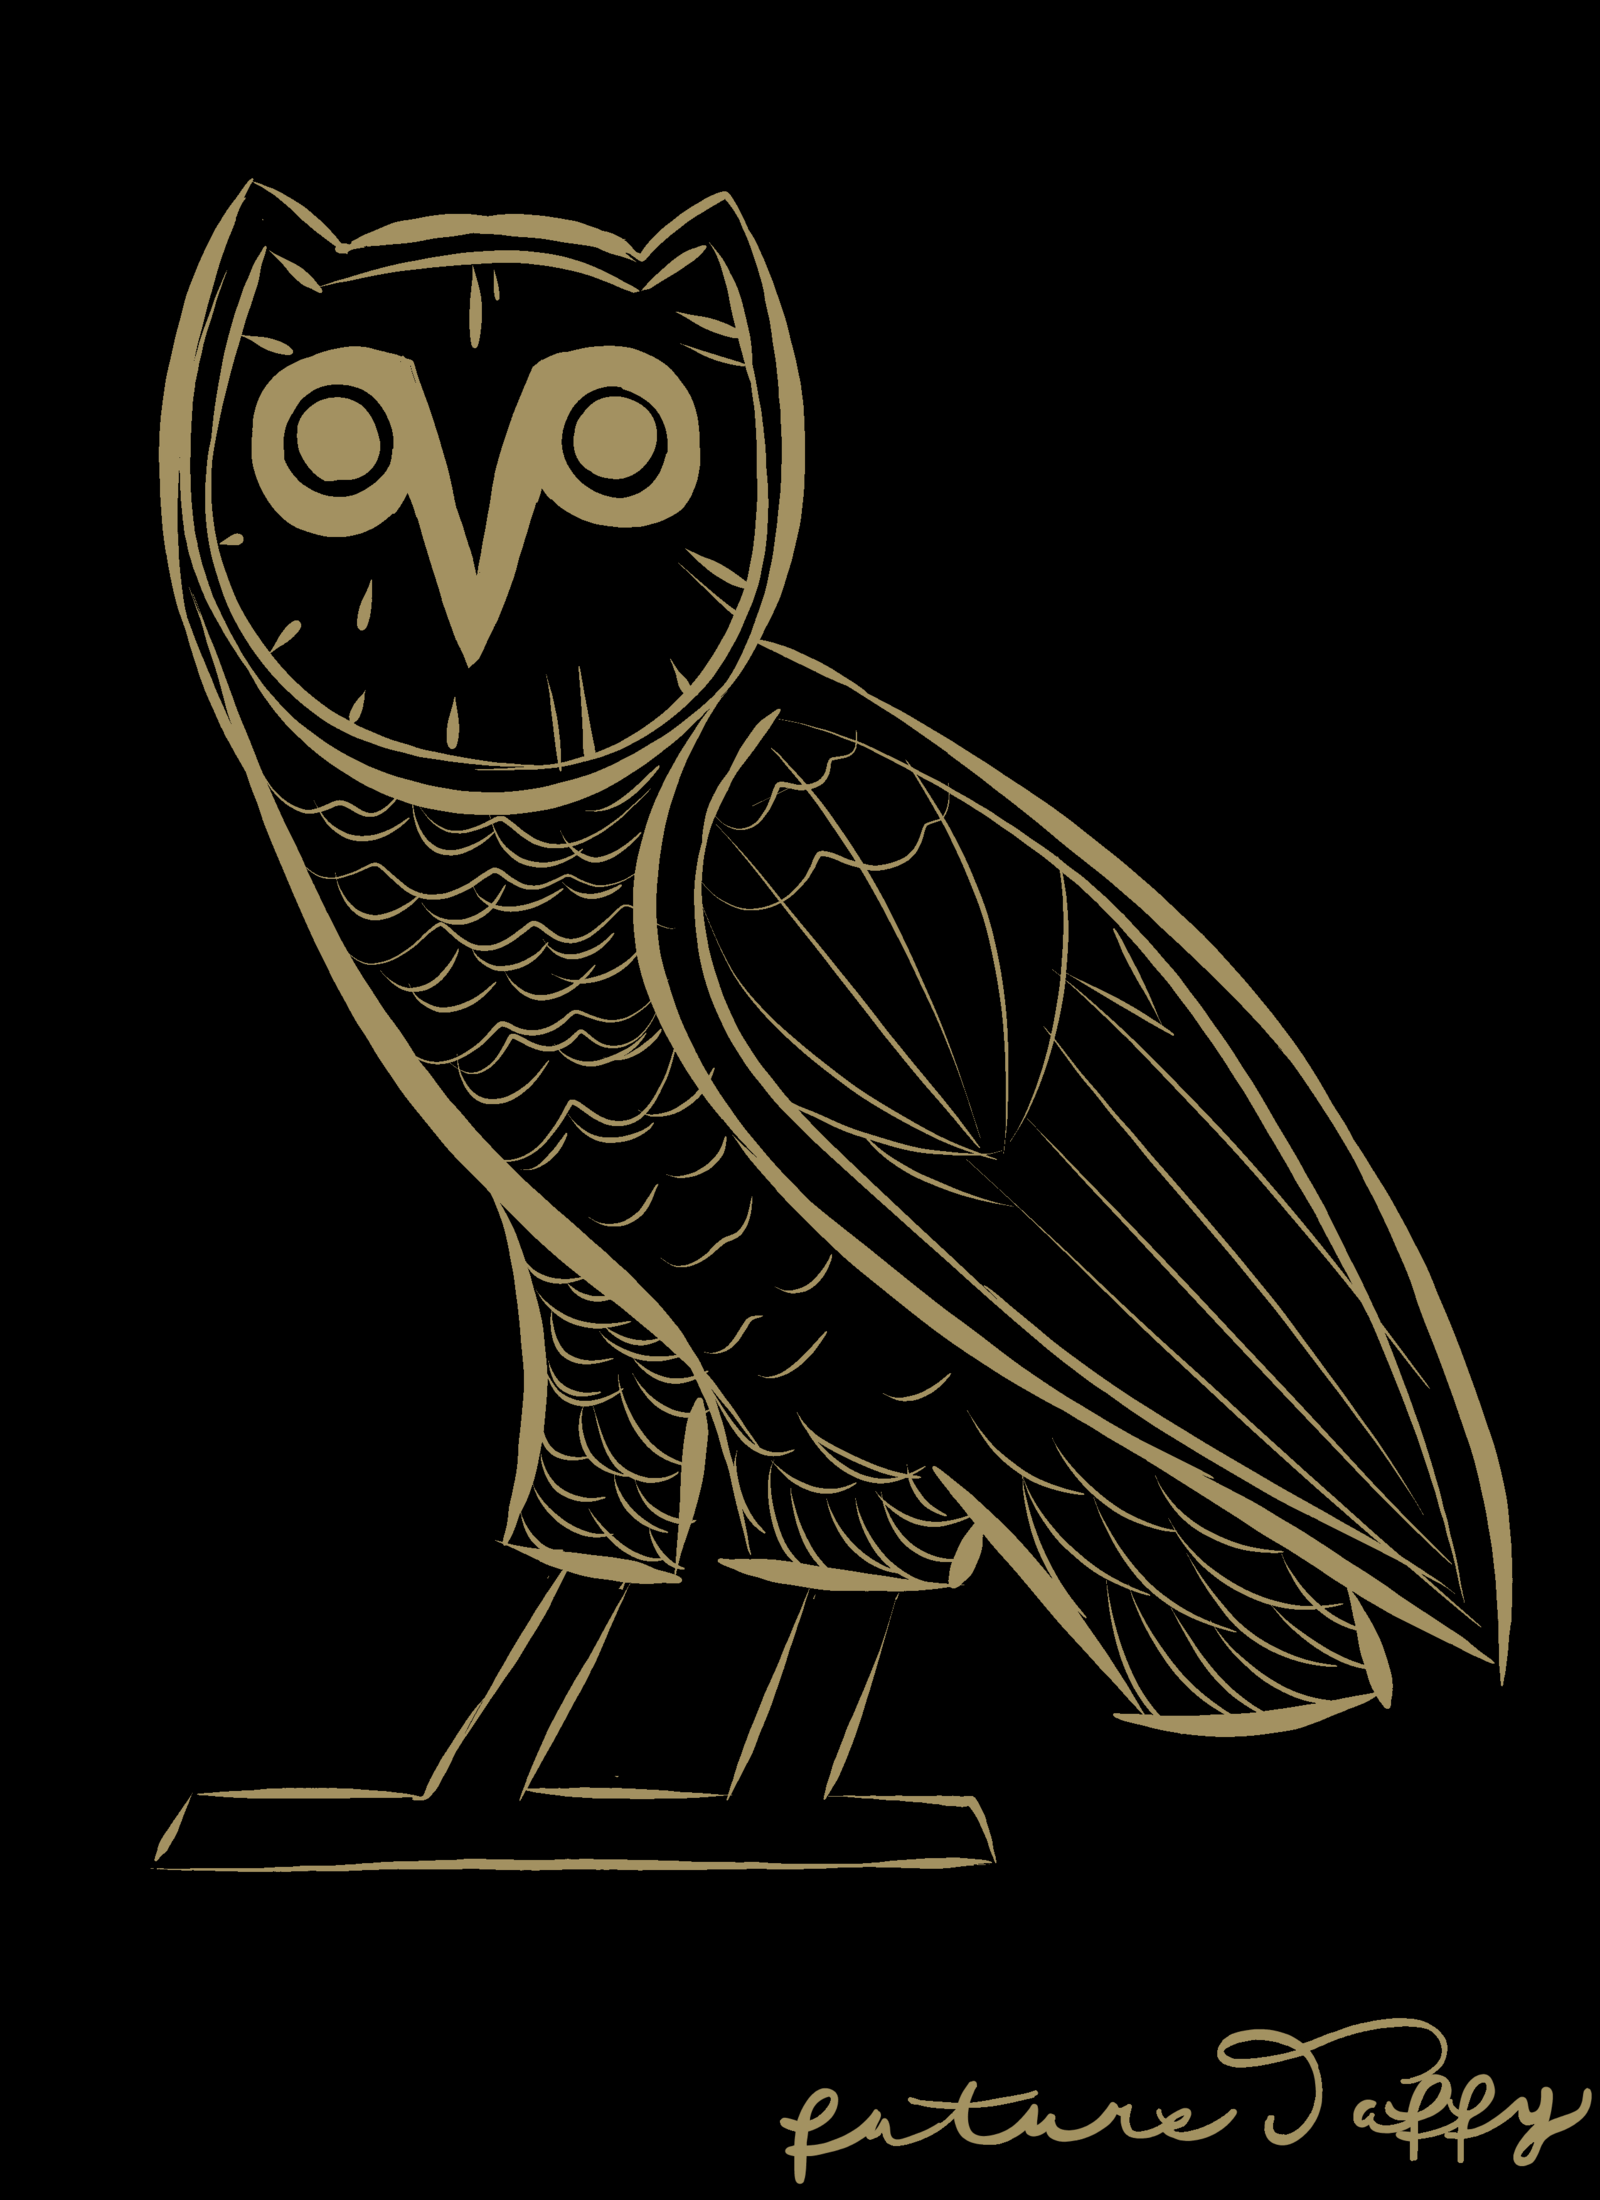 9 Lovable Ovoxo Wallpaper Iphone You Must See Iphone Wallpaper Owl Wallpaper Owl Background